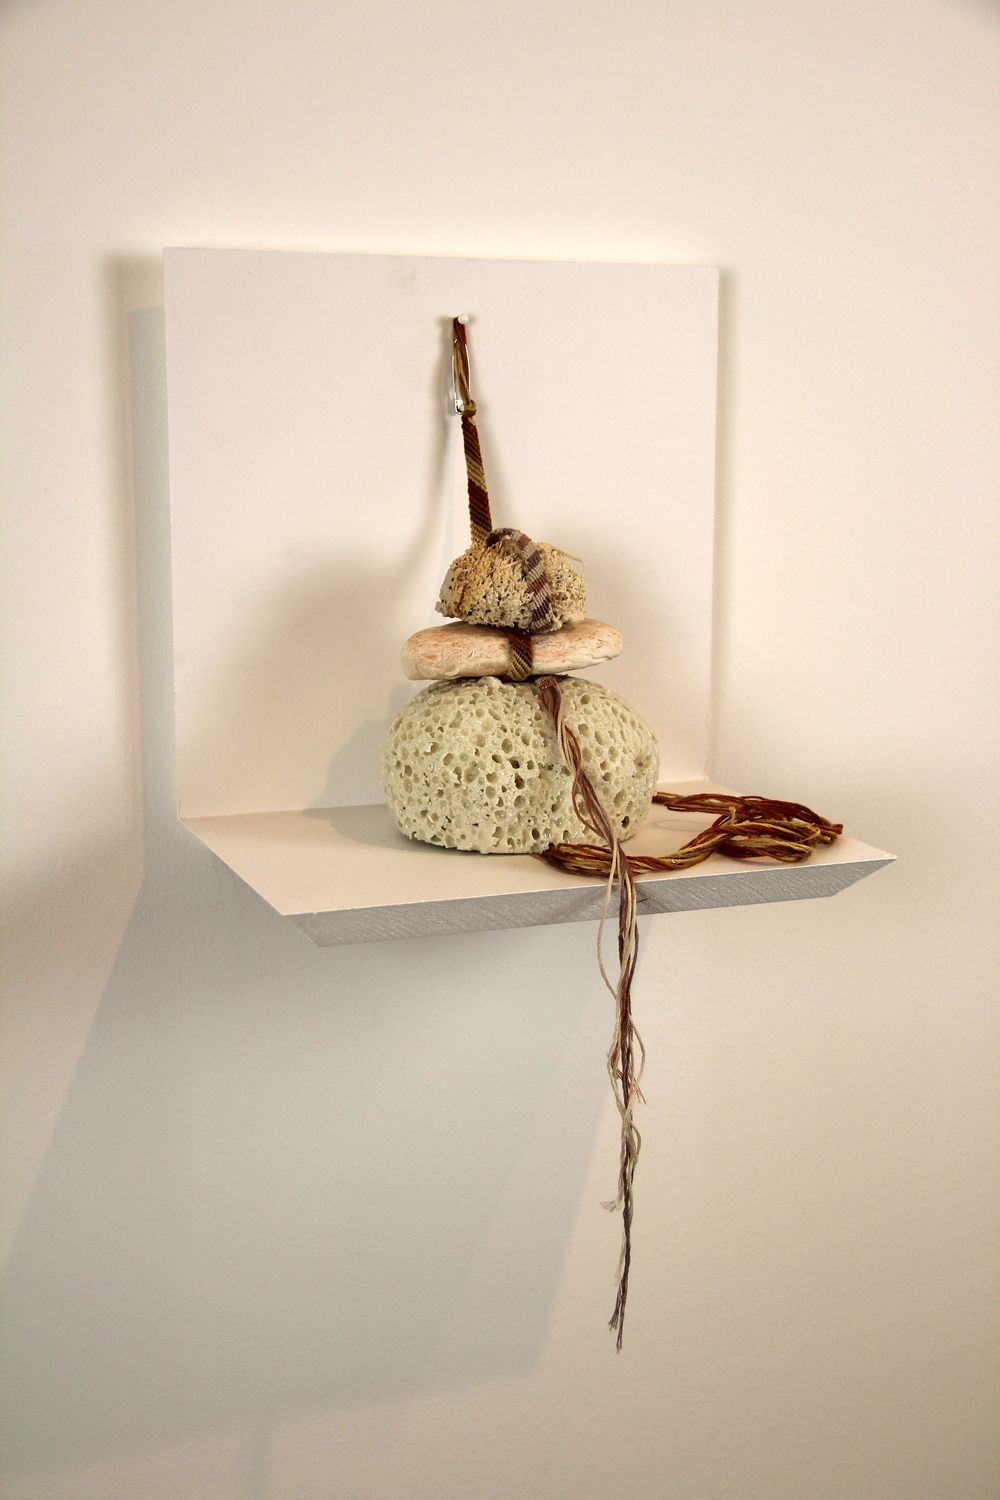 "hush.     porcelain, embroidery thread, safety pin. 10 x 10 x 7"". 2011"